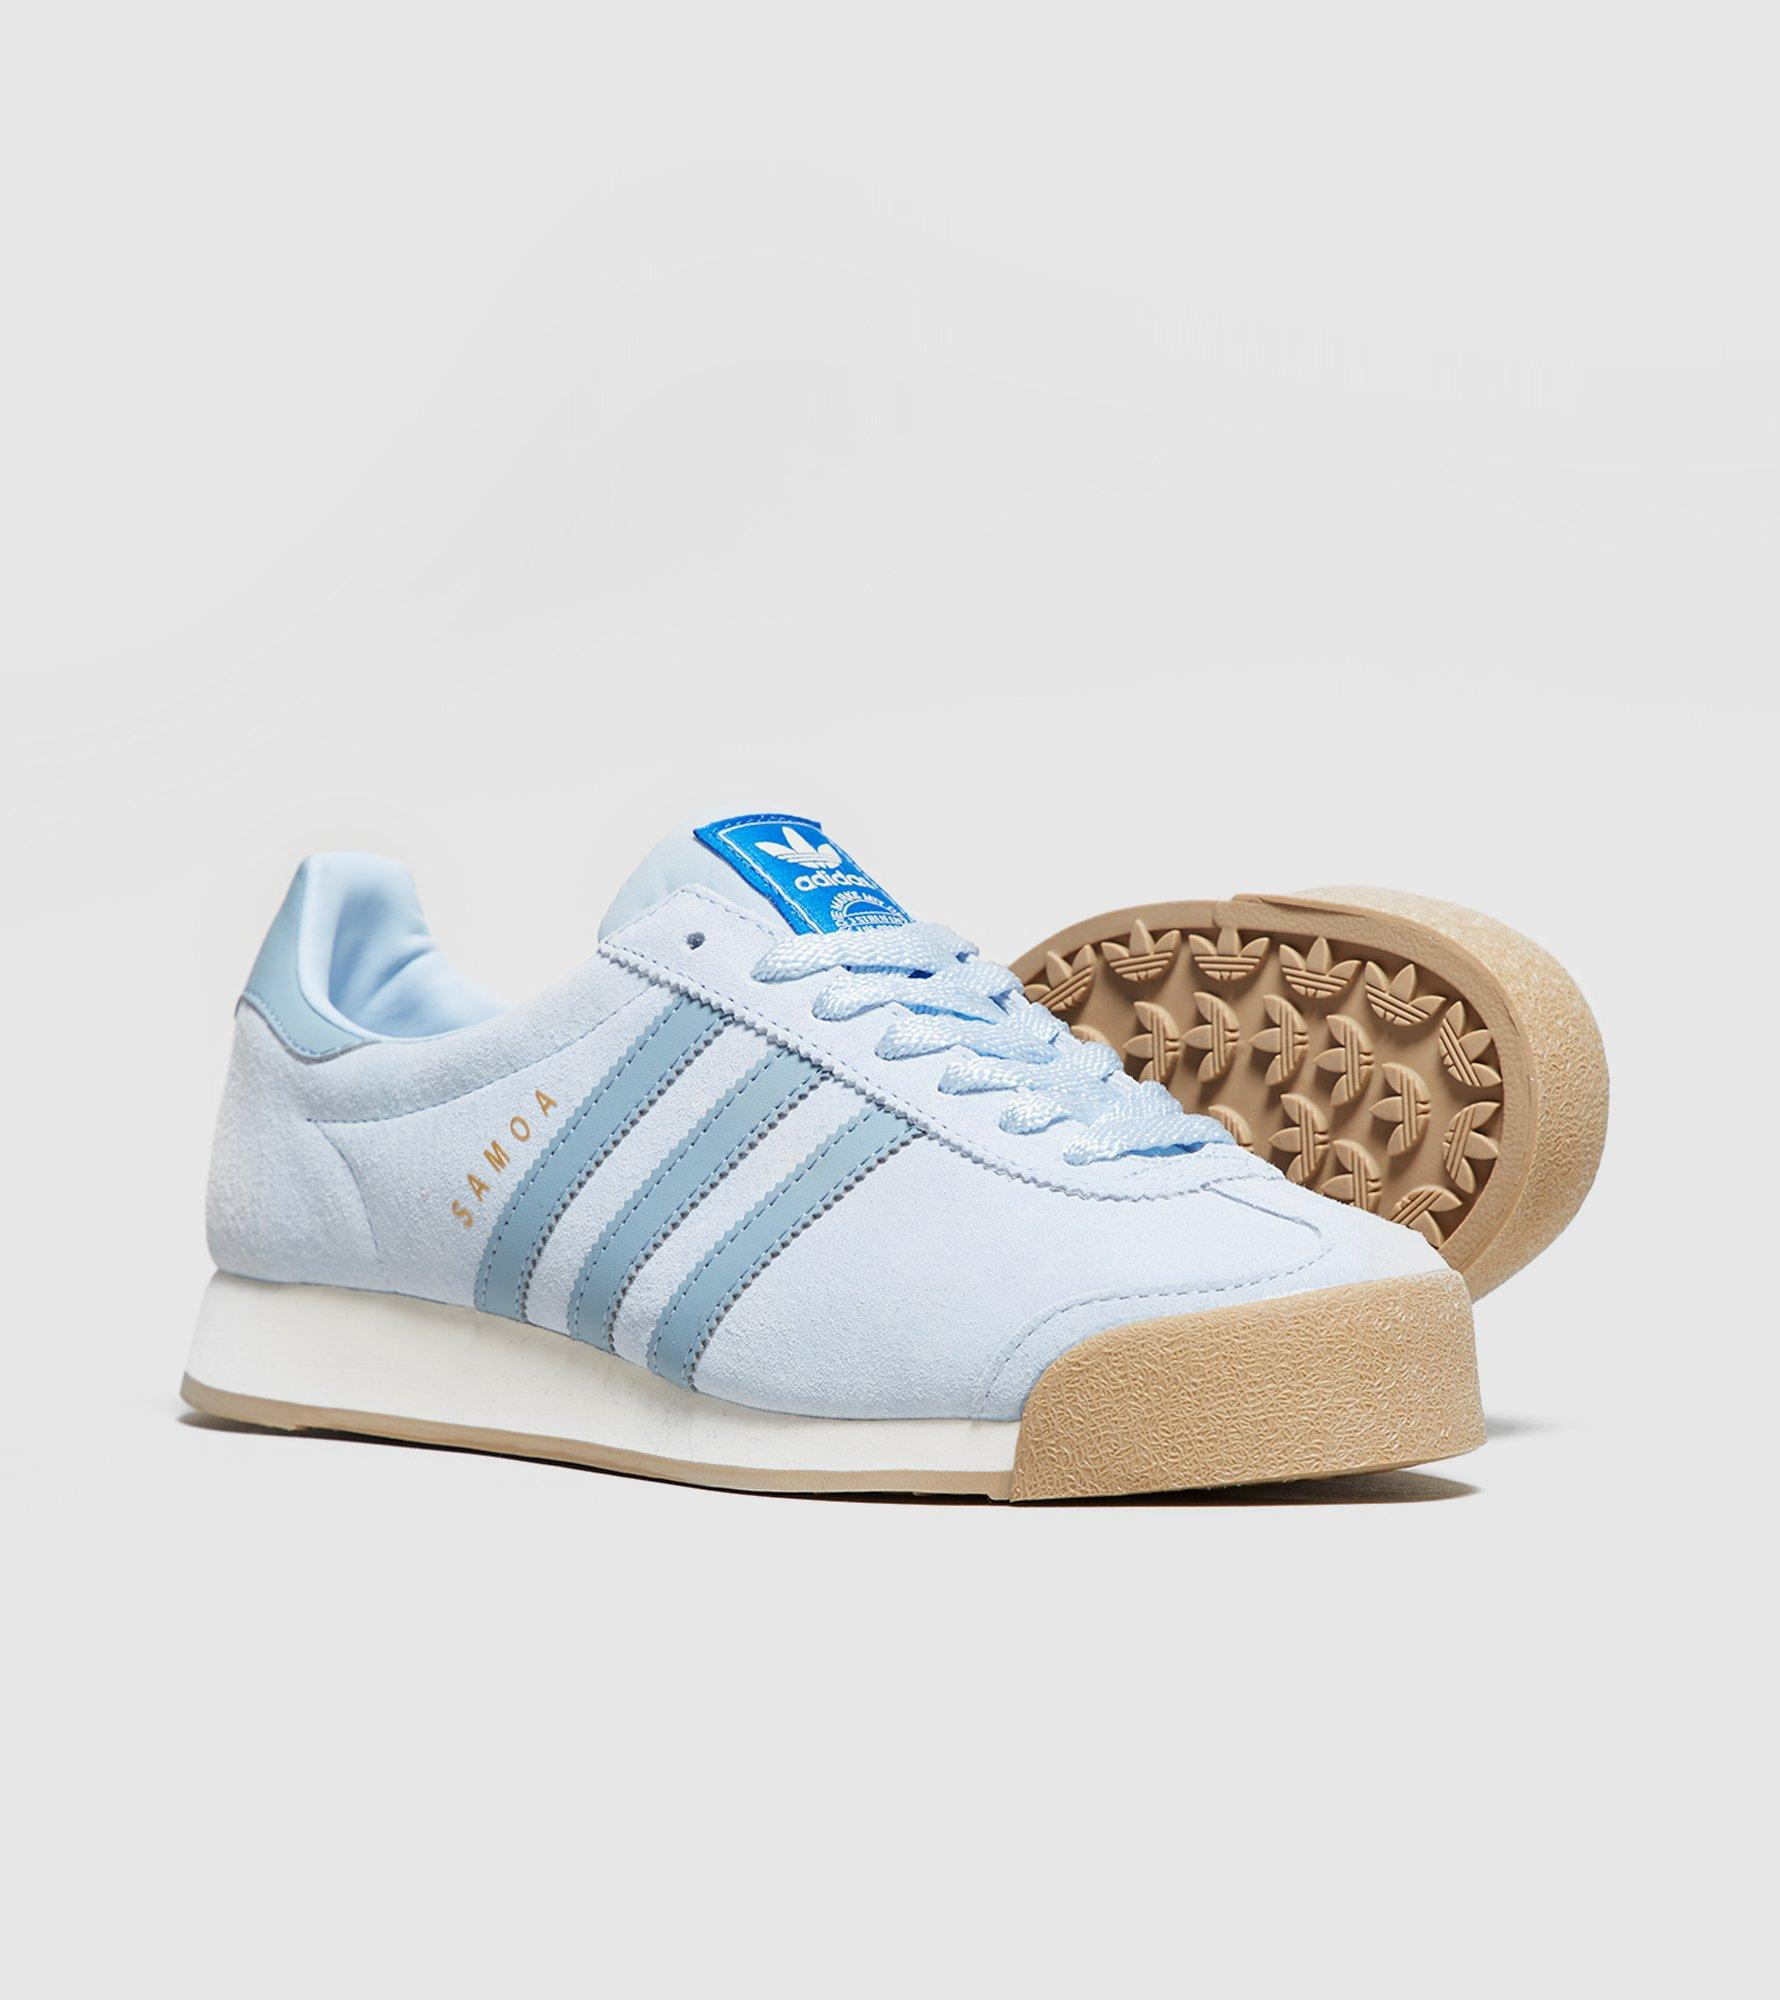 Lyst - Adidas Originals Samoa Vintage in Blue for Men ba9ec4cf56cf